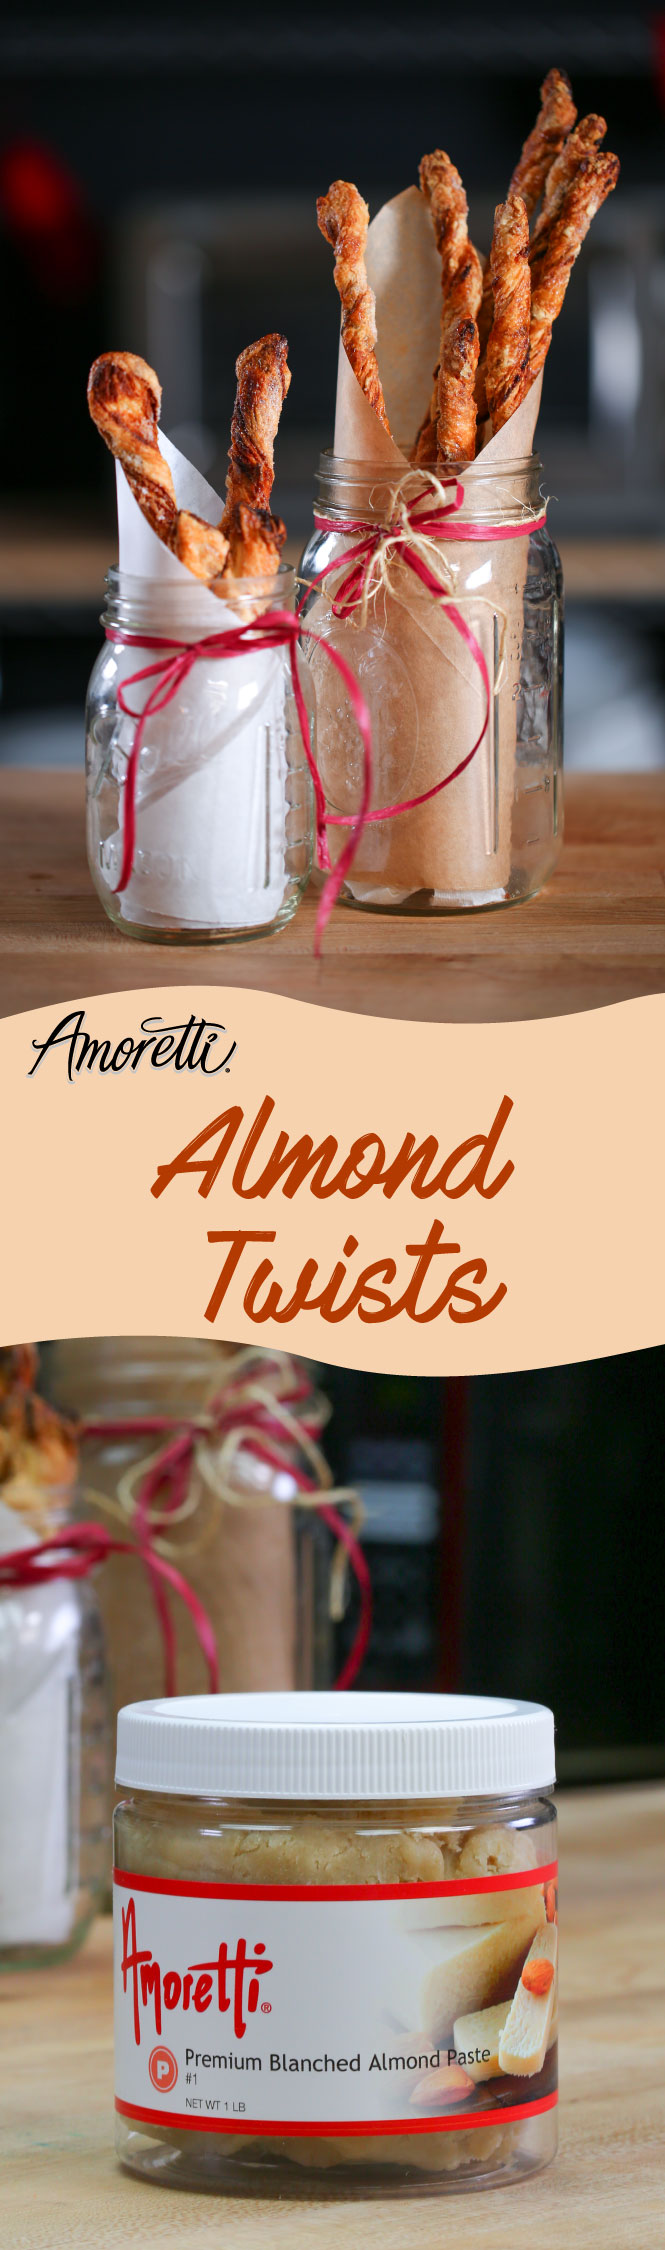 Surprise your friends and family with some Almond Twist gifts!